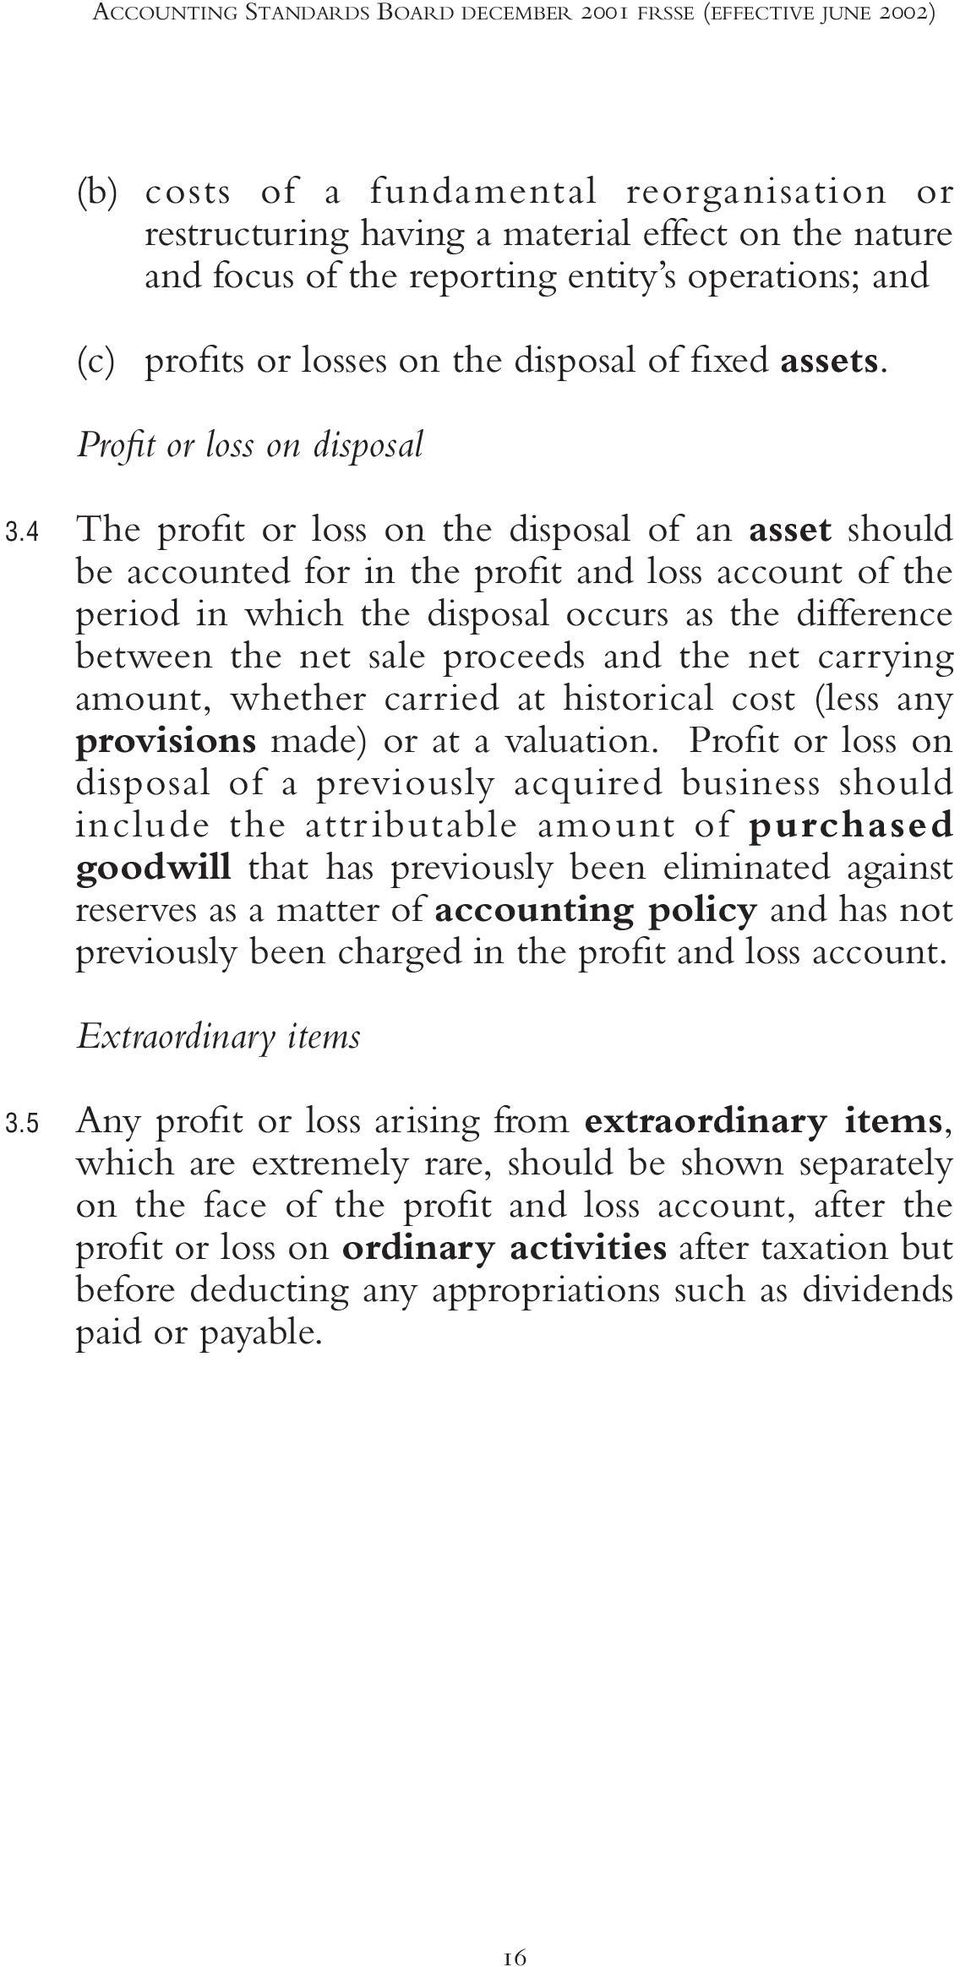 4 The profit or loss on the disposal of an asset should be accounted for in the profit and loss account of the period in which the disposal occurs as the difference between the net sale proceeds and